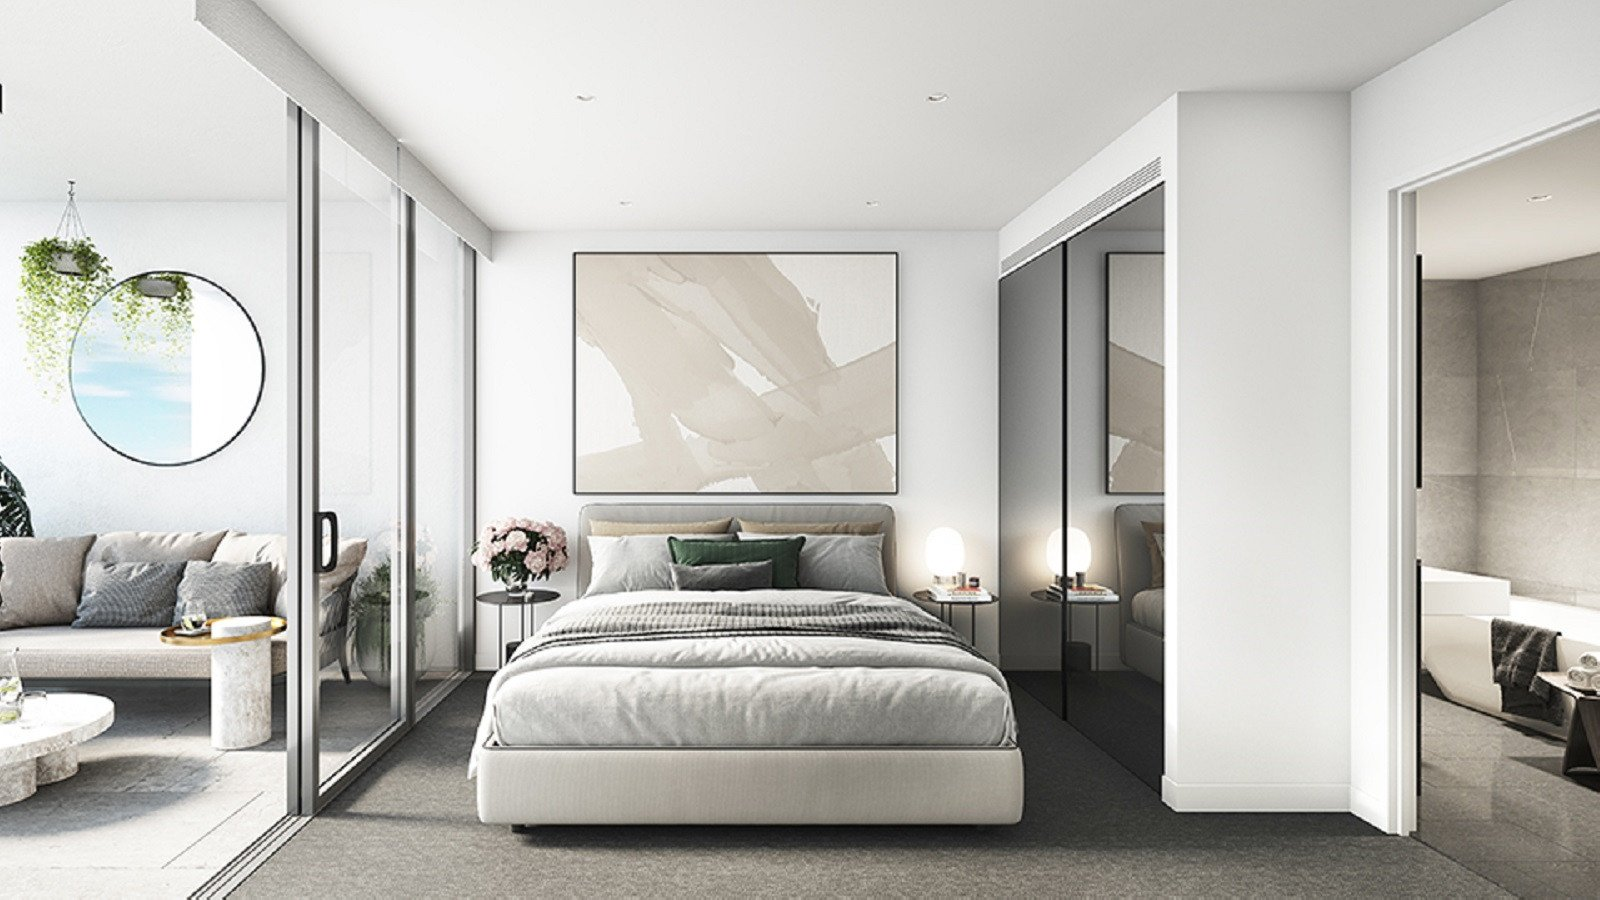 Zetland Apartments-image-7